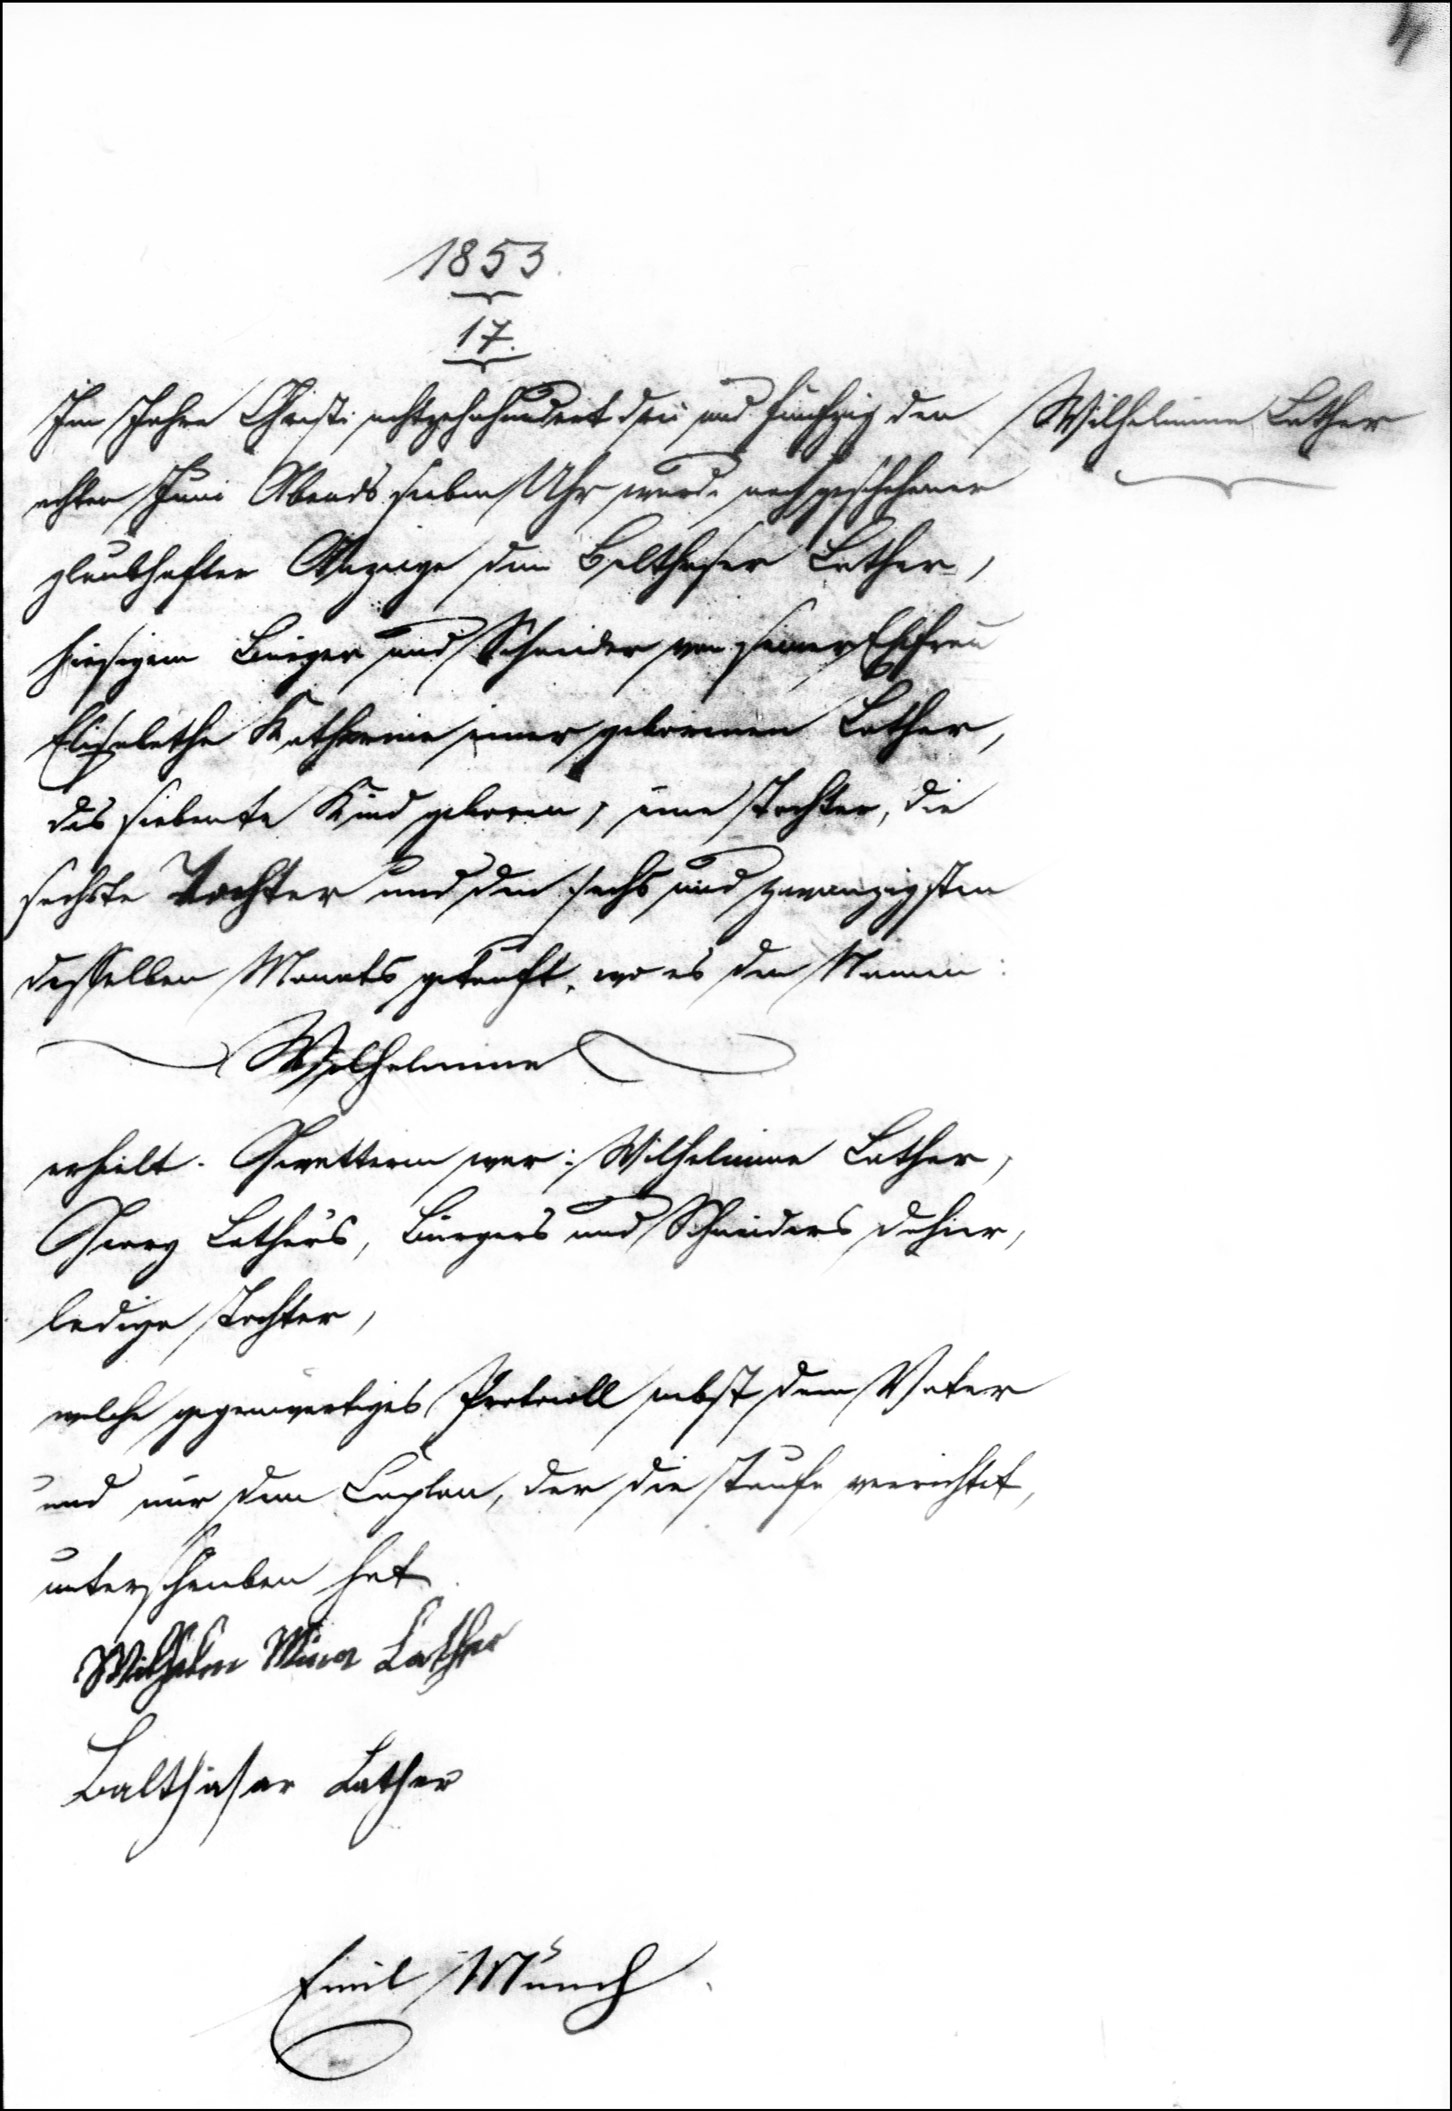 The Birth and Baptismal Record of Wilhelmina Lather - 1853